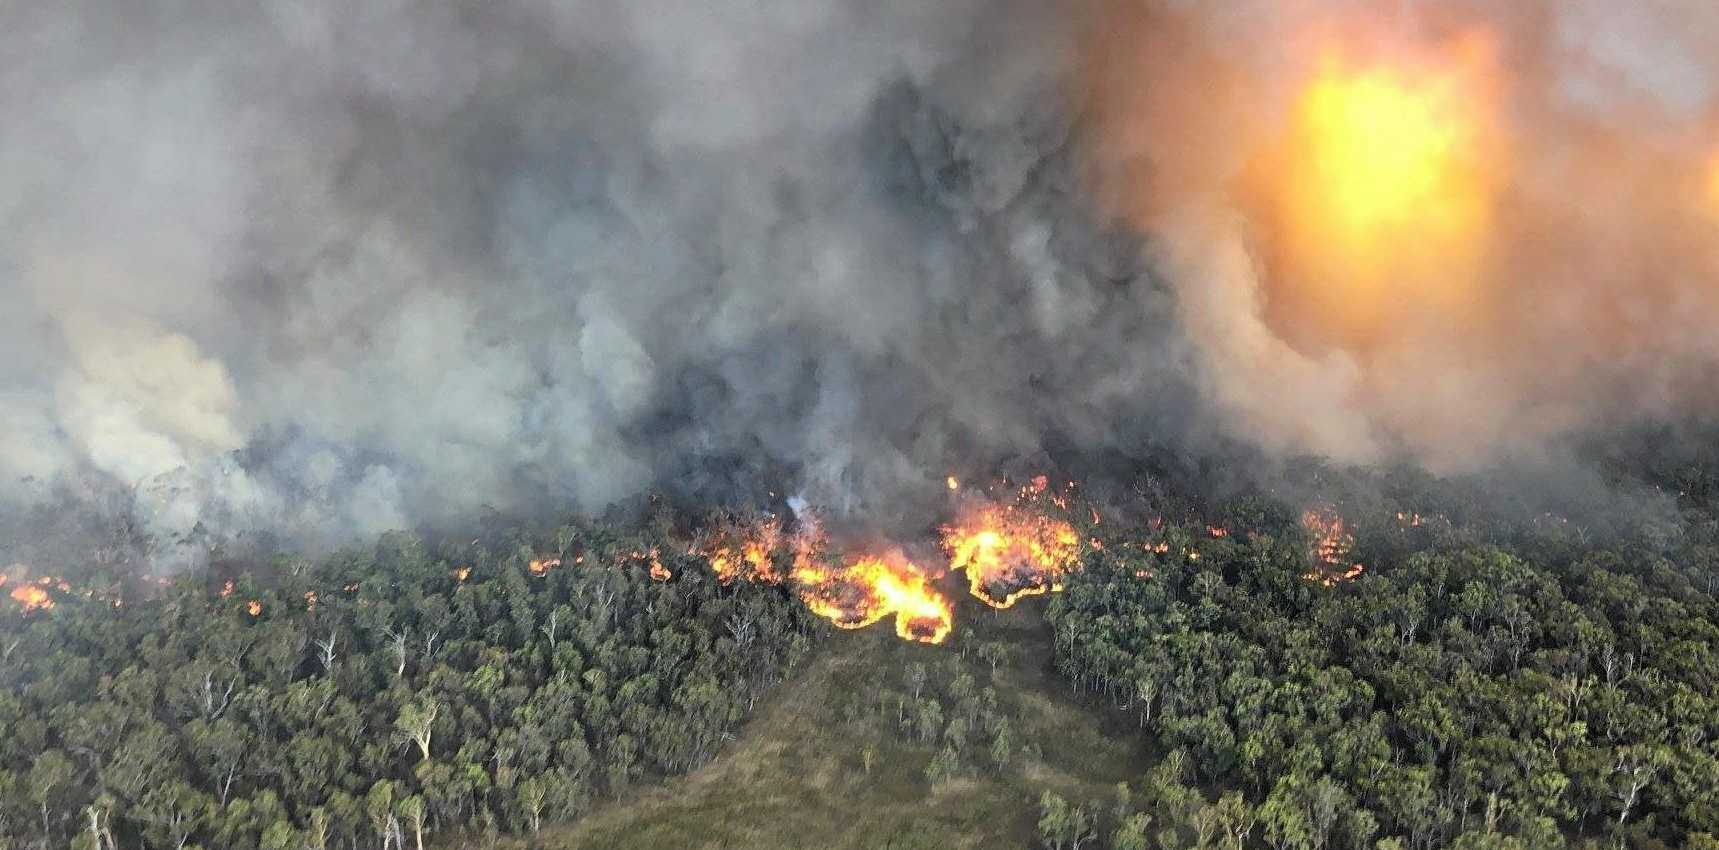 CLOSE WATCH: An aerial view of the bushfire near Wallangarra burning in the Girraween National Park on the Queensland-NSW border.